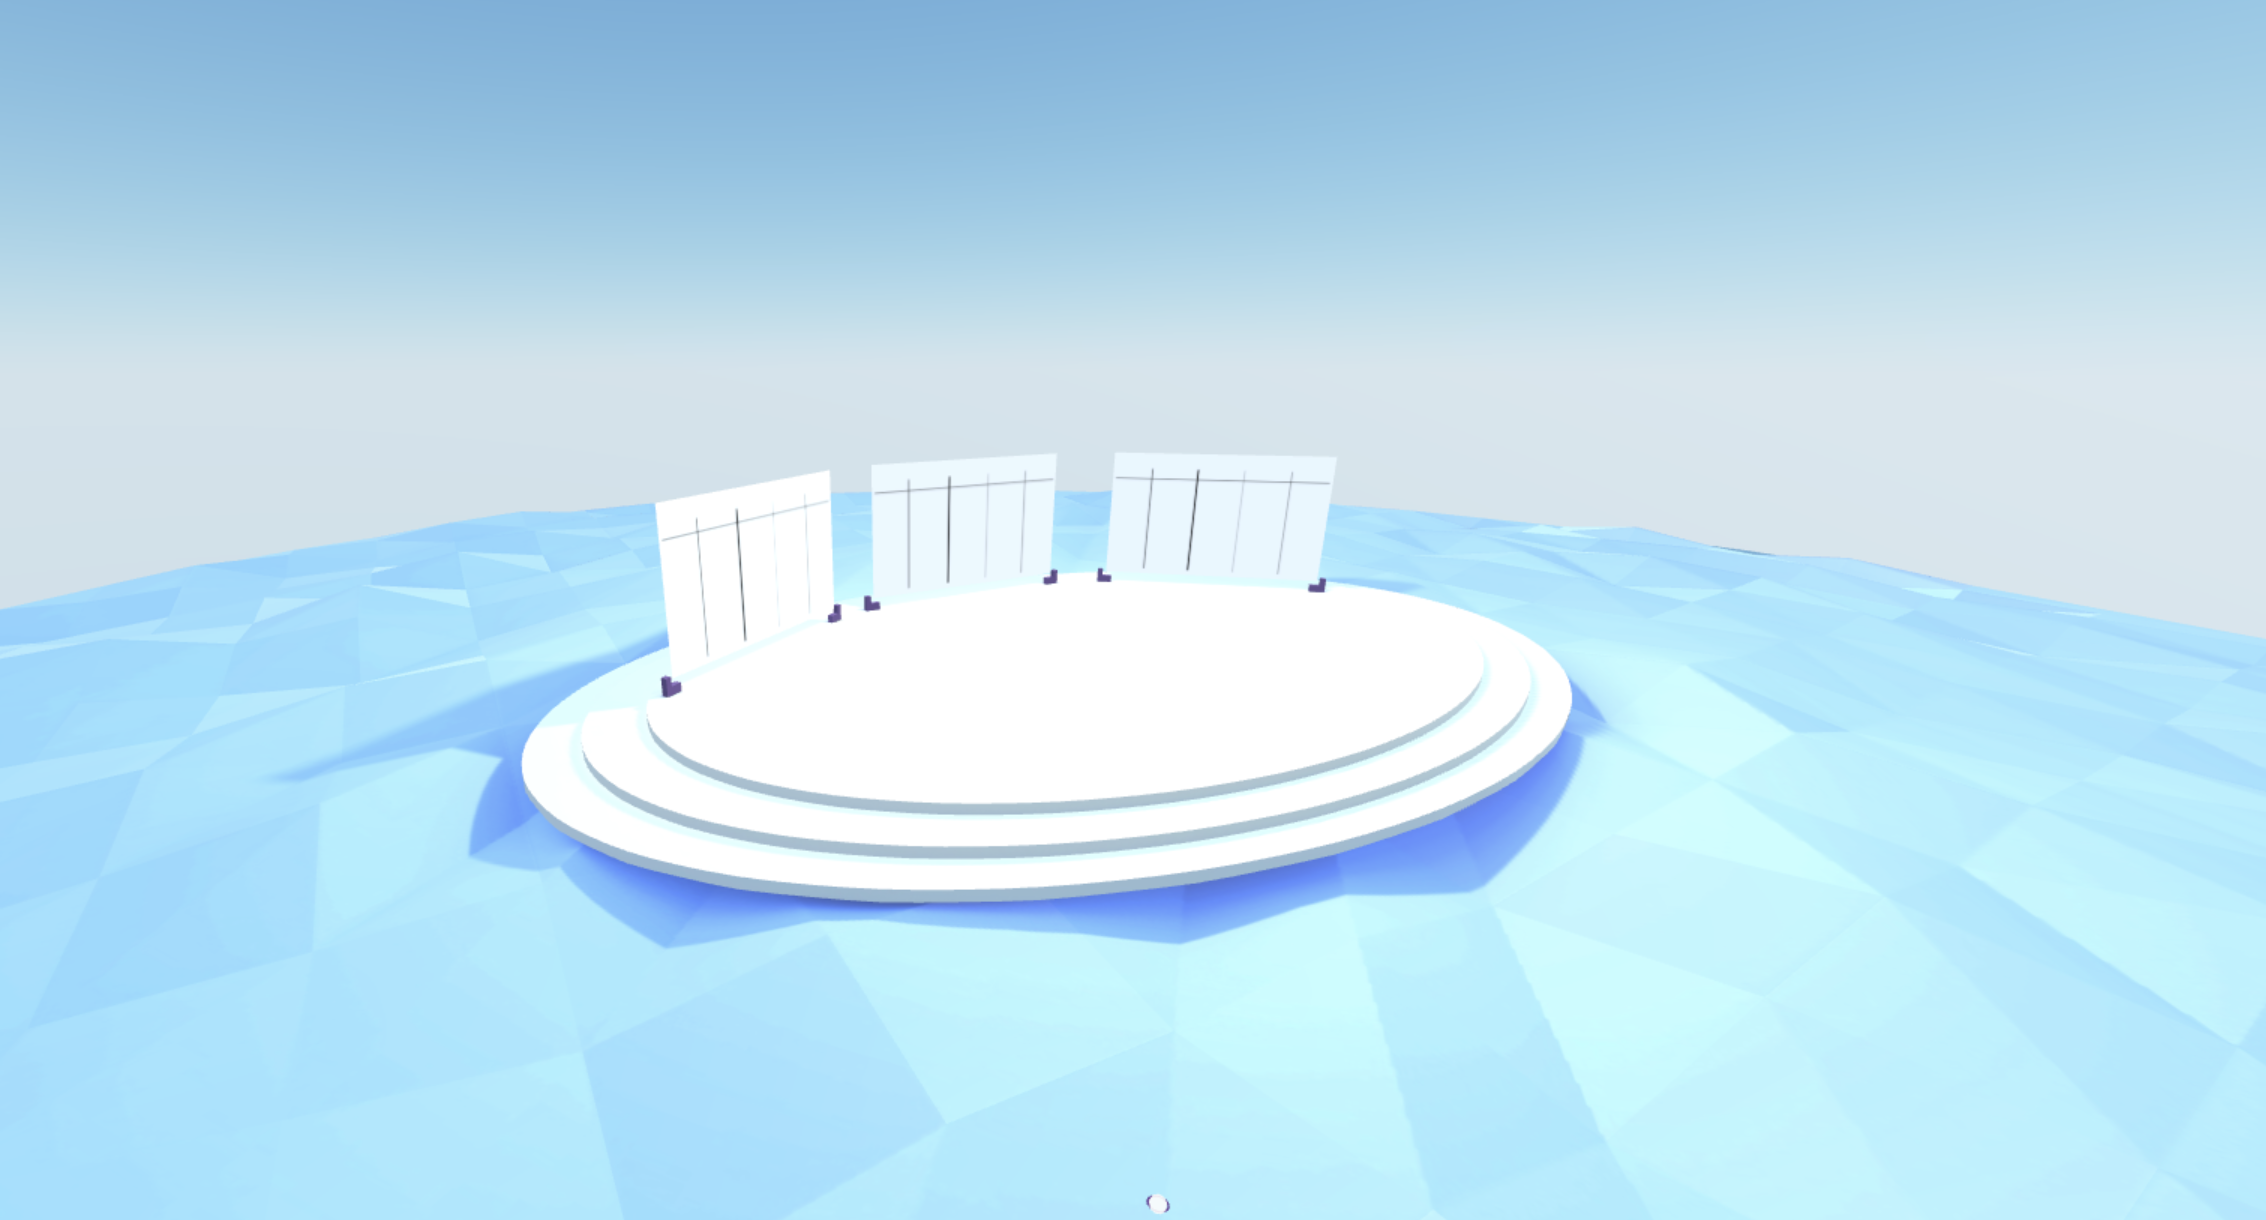 A 3D scene with open space, walls specifically for colaboration